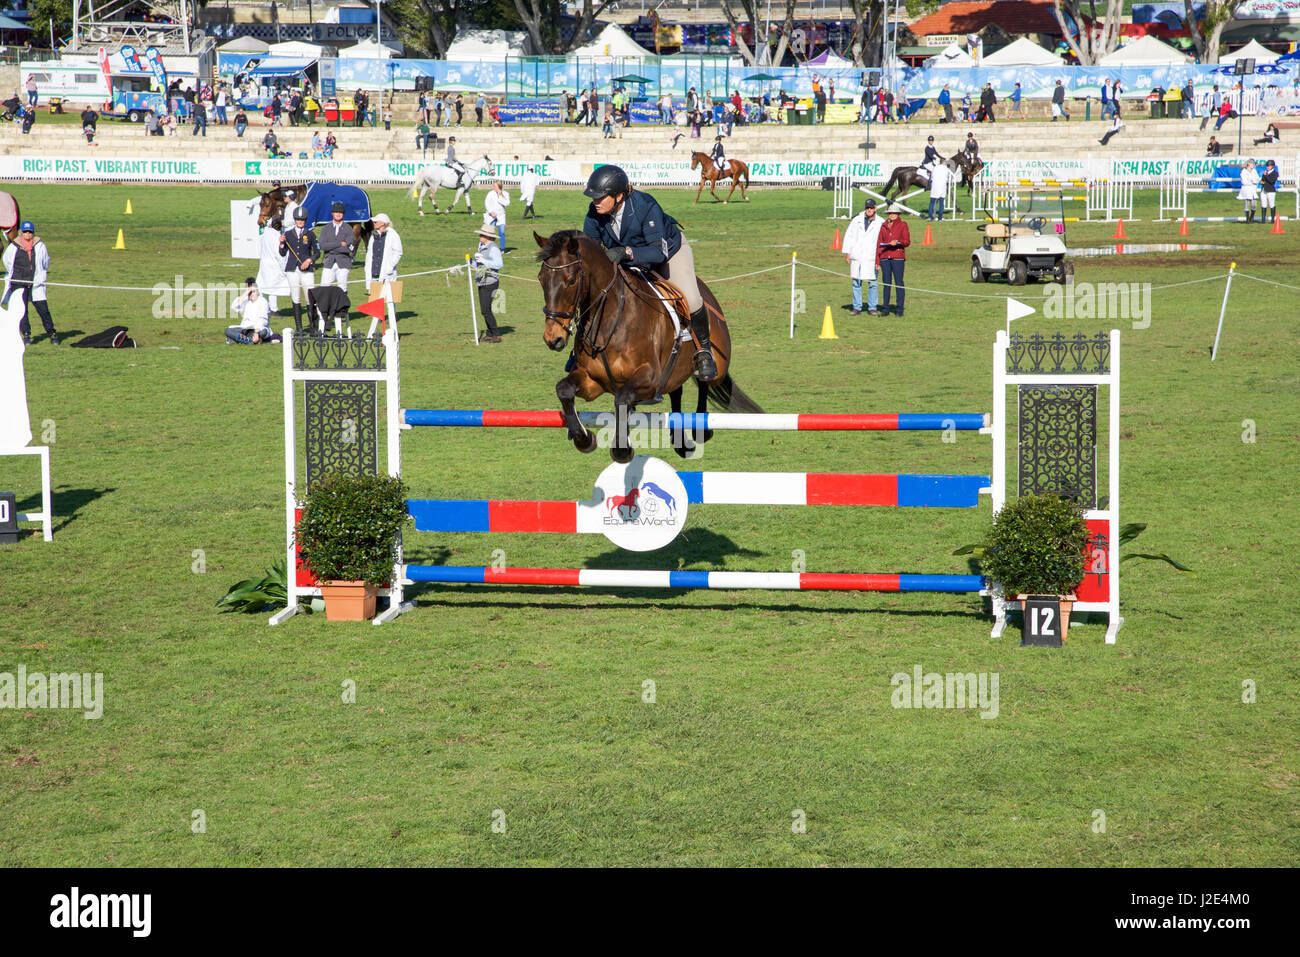 Claremont,WA,Australia-September 25,2016:Horse and rider at showjumping competition at the 2016 Perth Royal Show - Stock Image